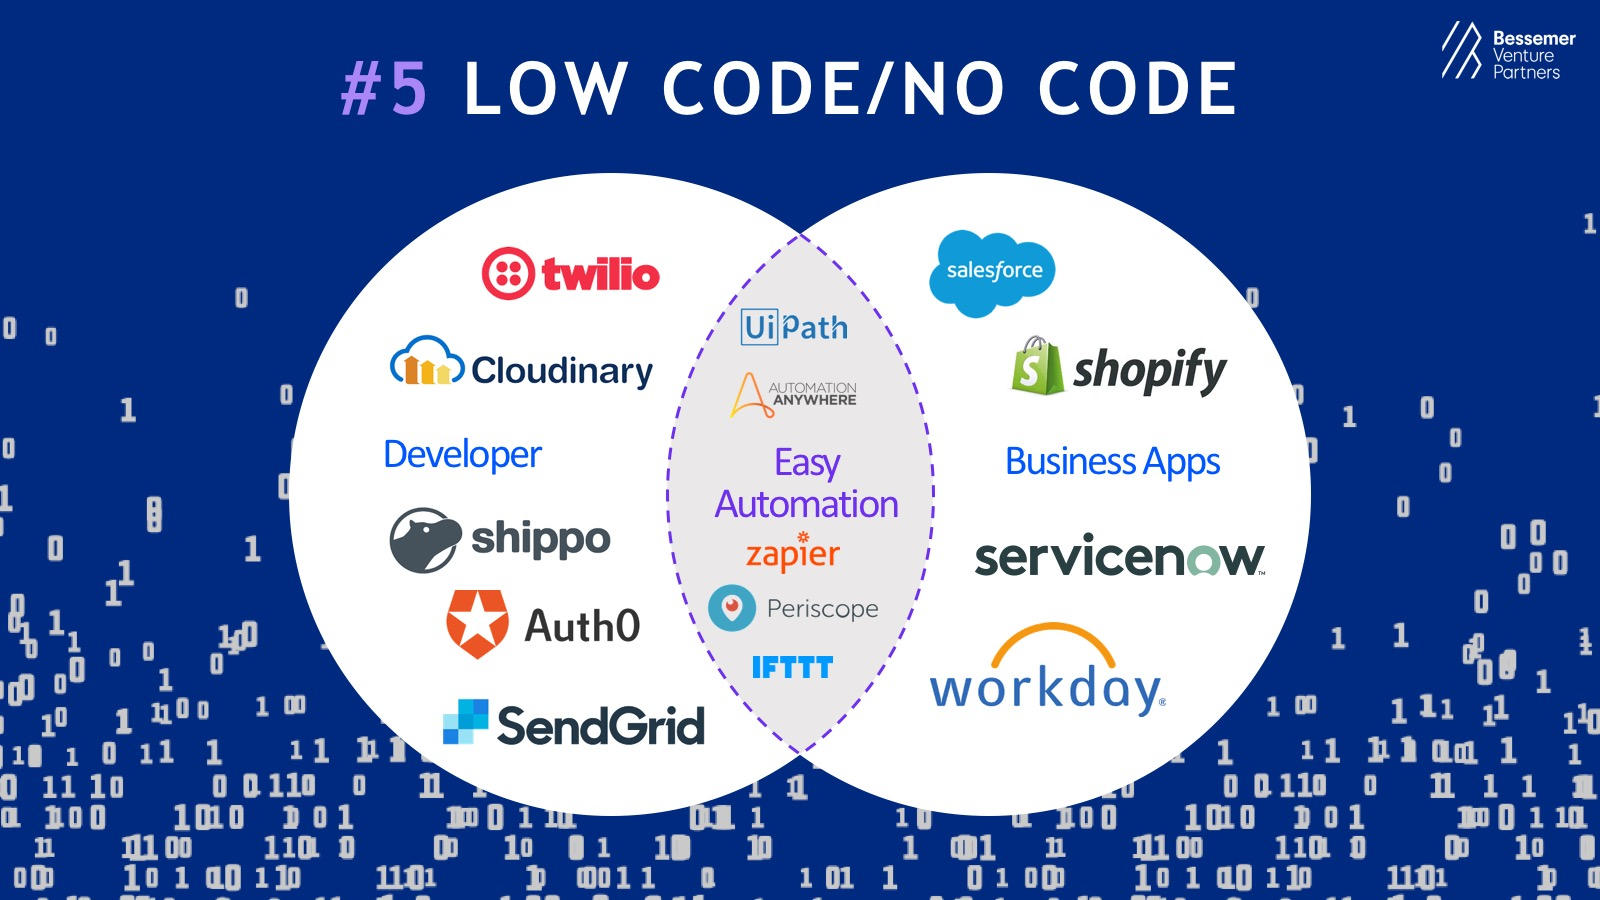 low code technology solutions